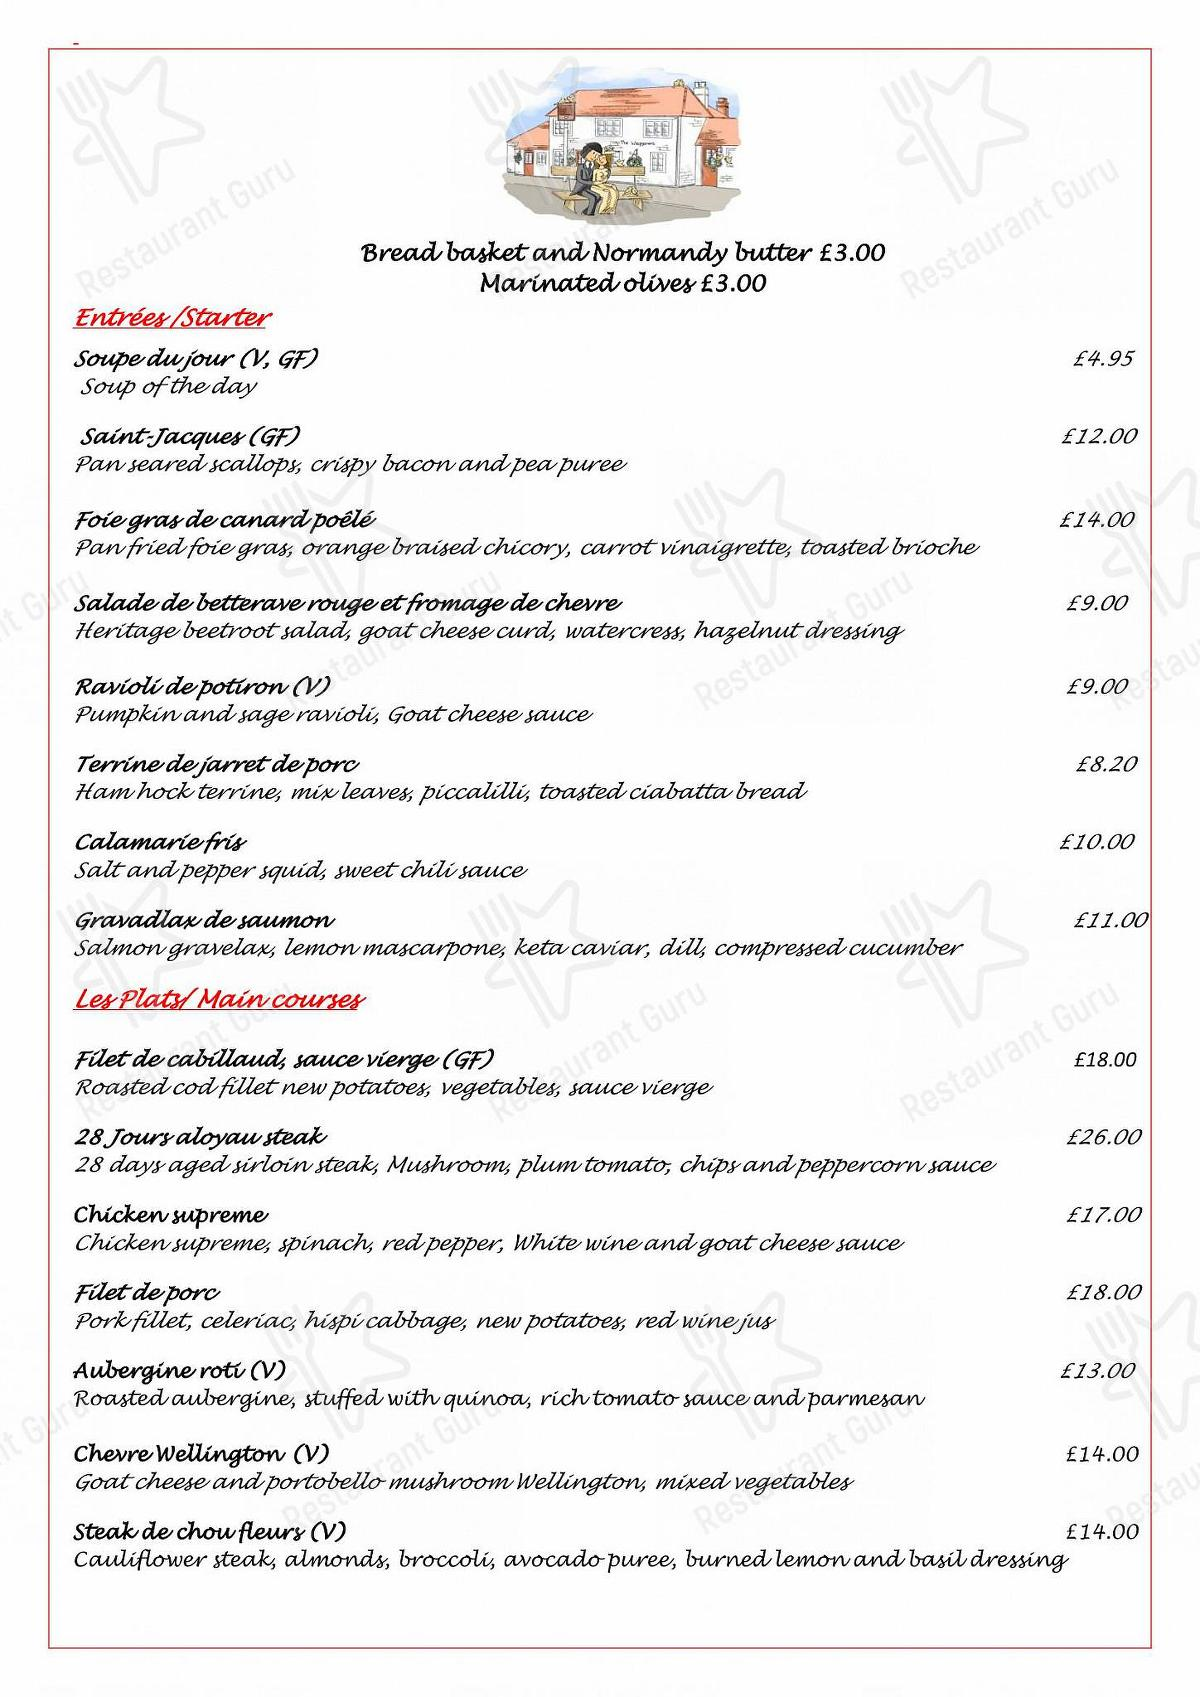 The Waggoners menu - dishes and beverages